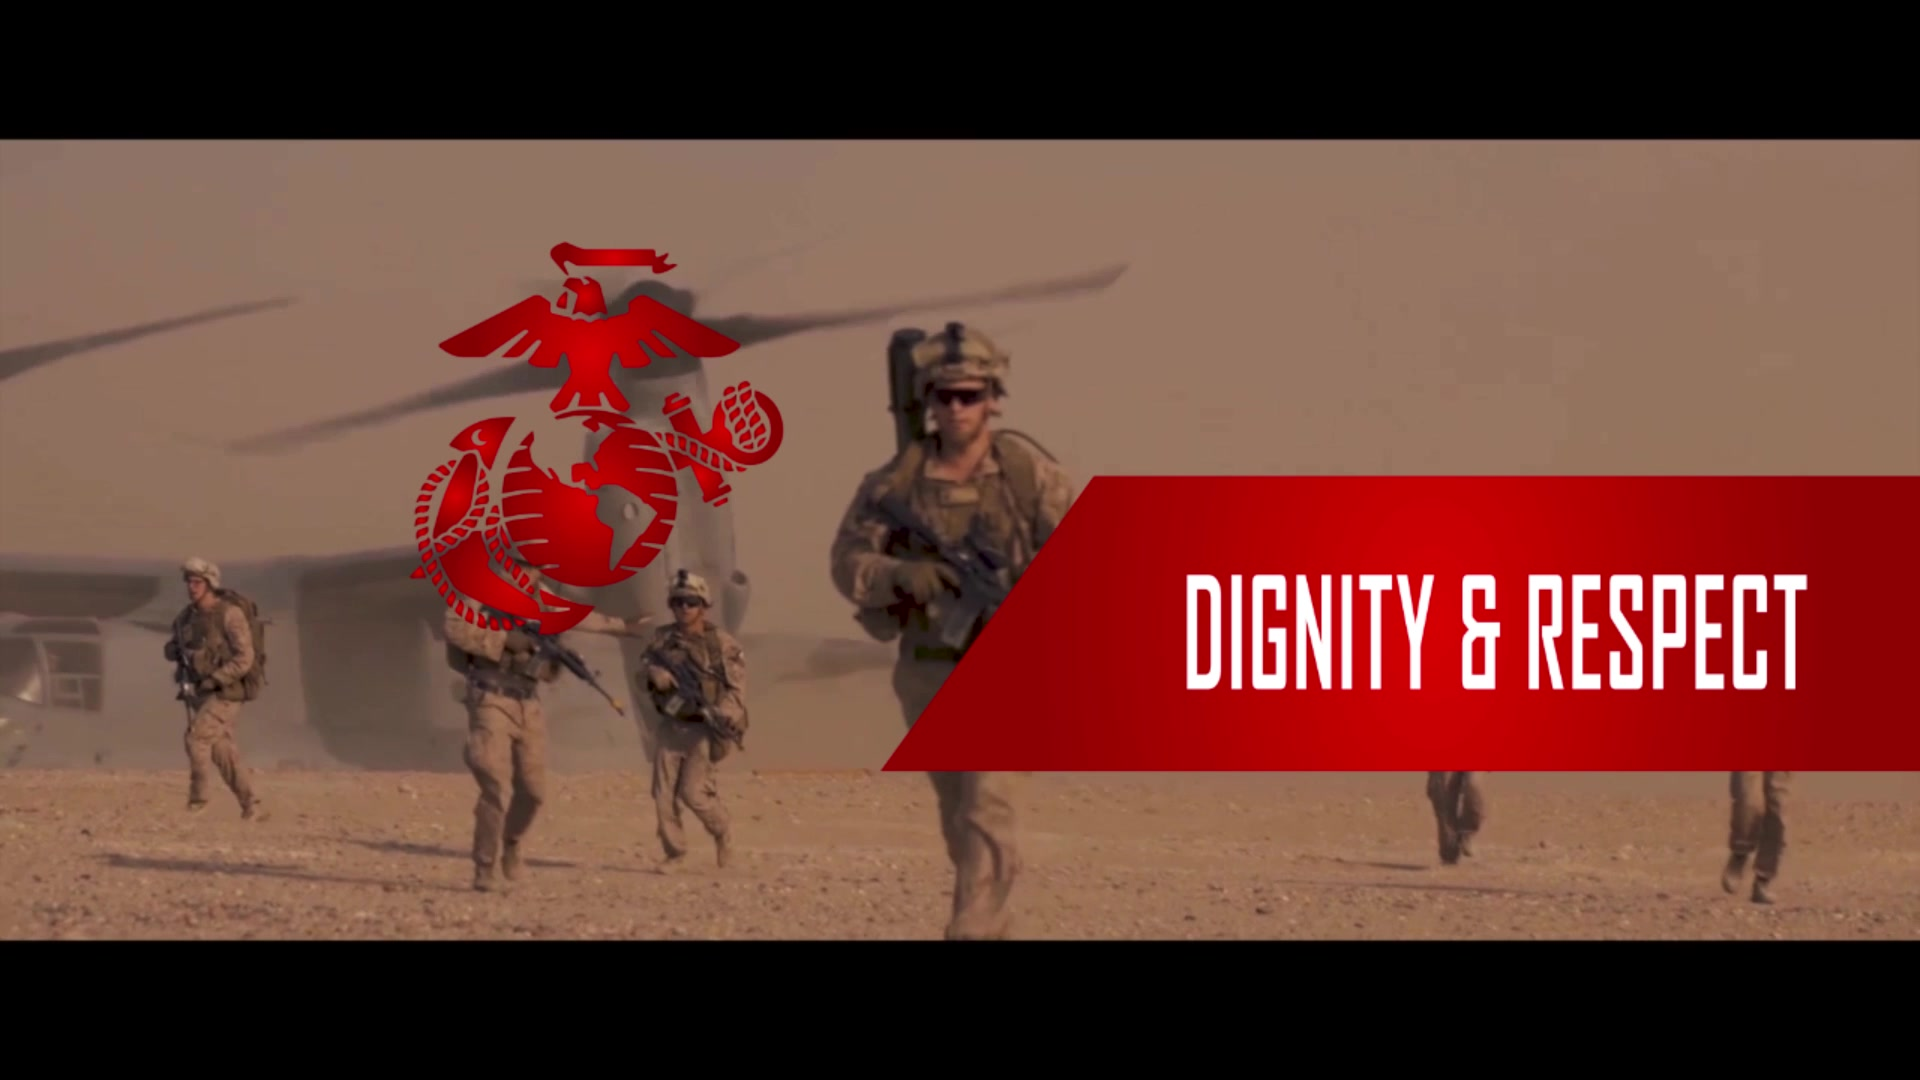 """Lt. Gen. Robert F. Hedelund, commanding general, II Marine Expeditionary Force, explains dignity and respect with II MEF. """"Do unto others as you would have them do unto you,"""" he said. """"Showing dignity and respect for our fellow Marines and Sailors is what matters to us."""" (U.S. Marine Corps video by Sgt. Matthew Callahan)"""